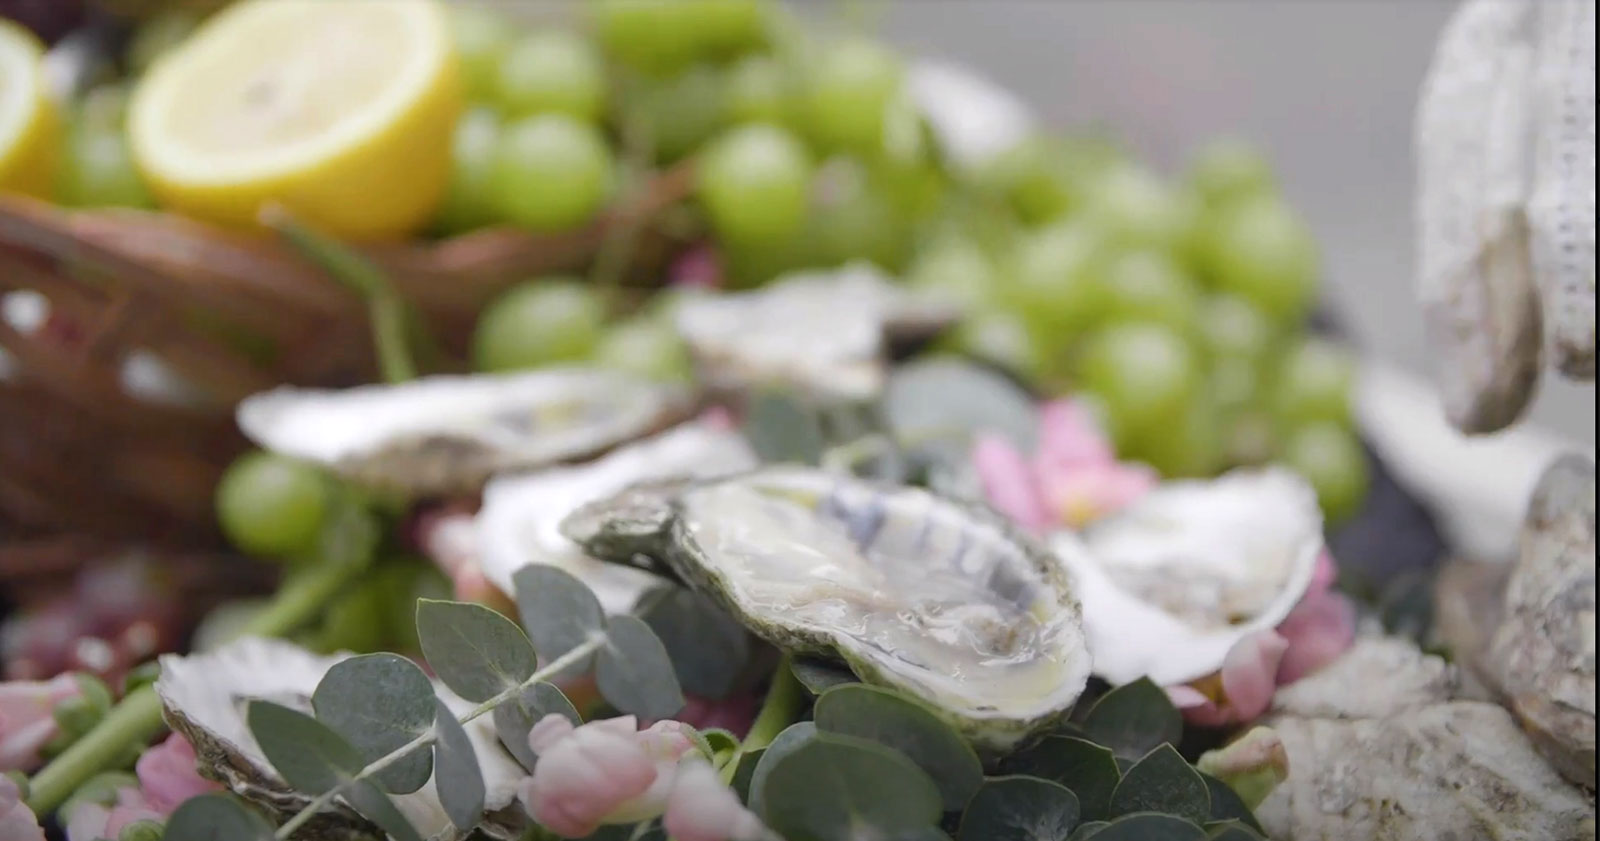 Oysters on the half shell (with grapes)